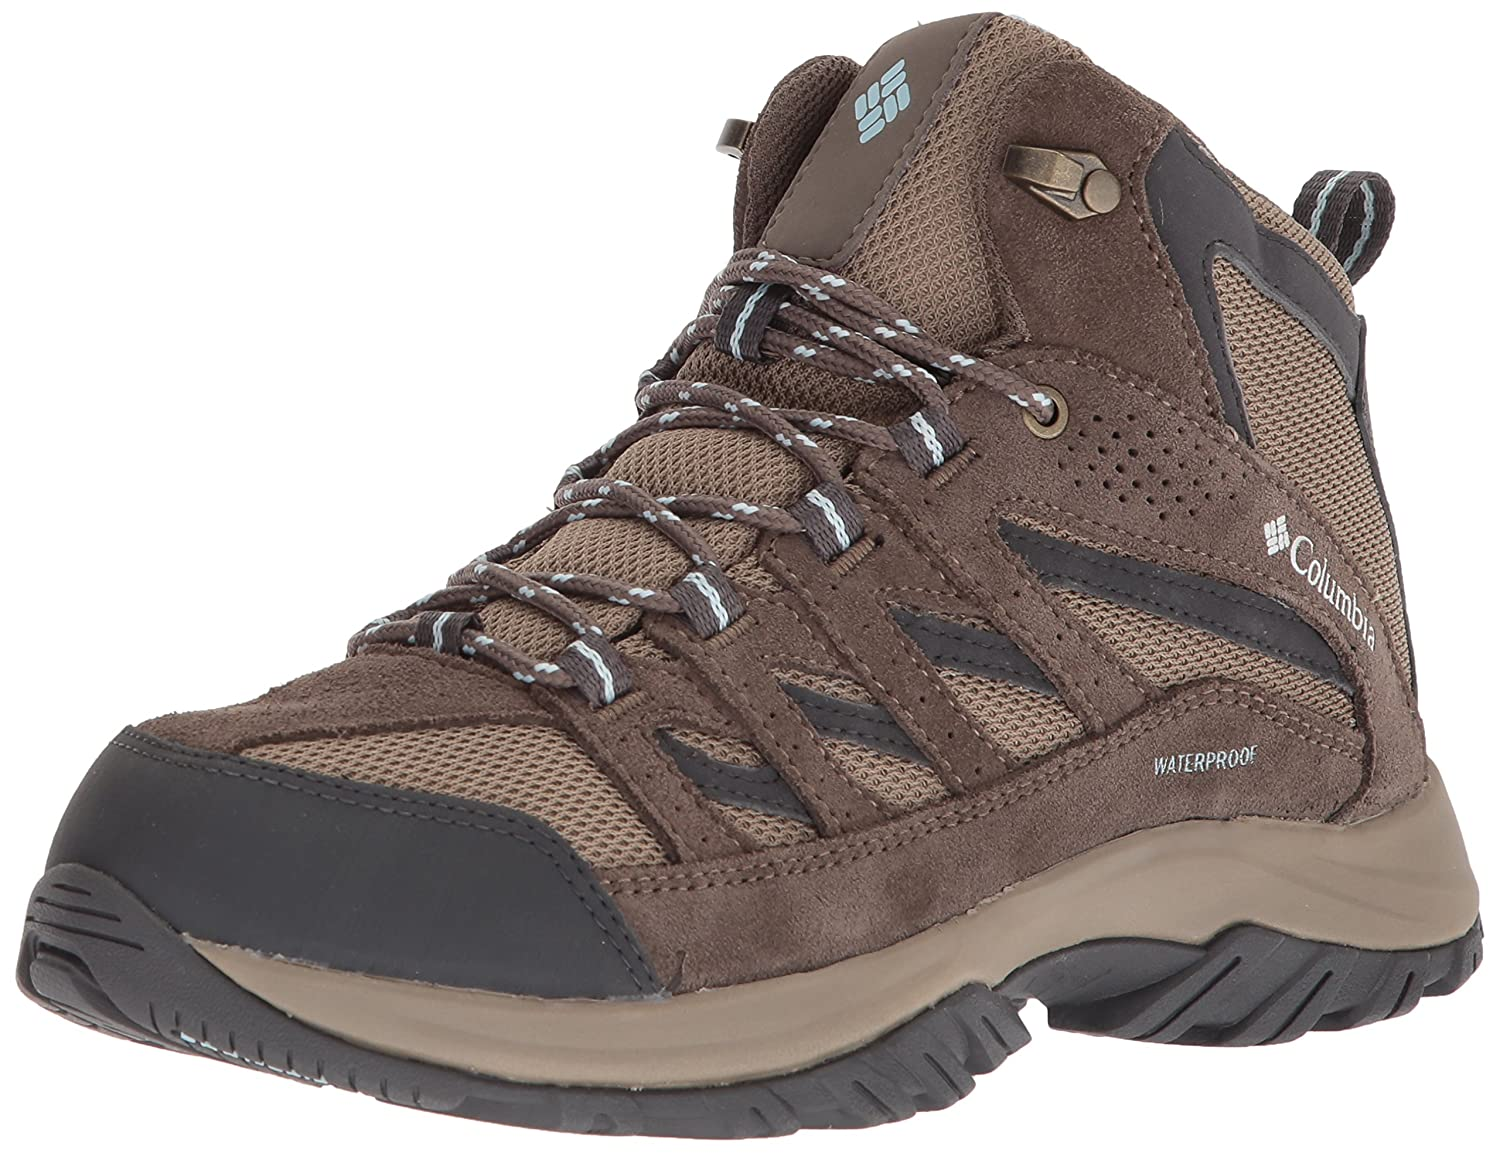 58332217bdc Columbia Women's Crestwood Mid Waterproof Hiking Boot, Breathable